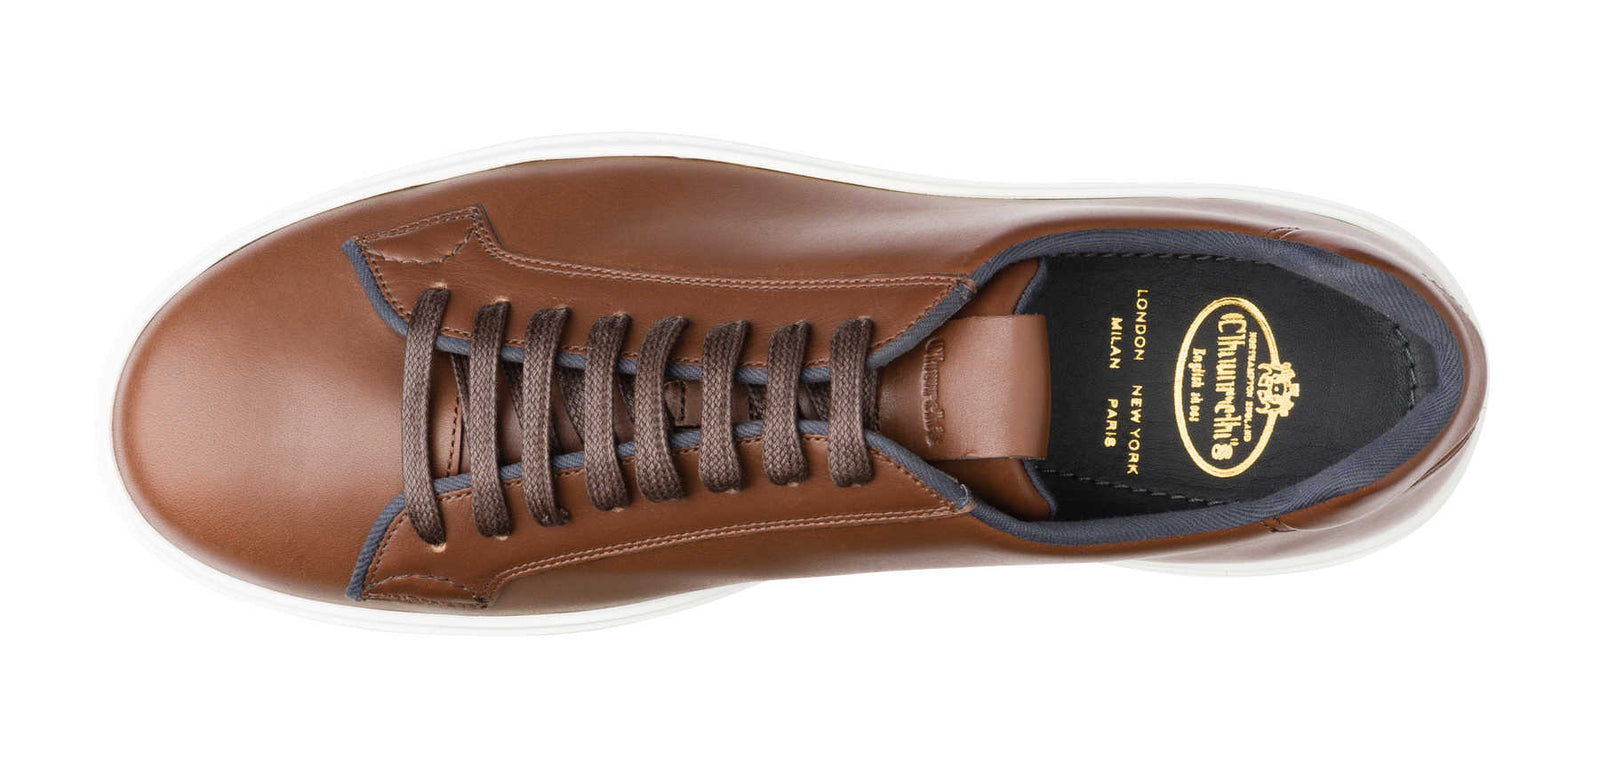 Church's Mirfield Antic Calf Sneaker in Brown